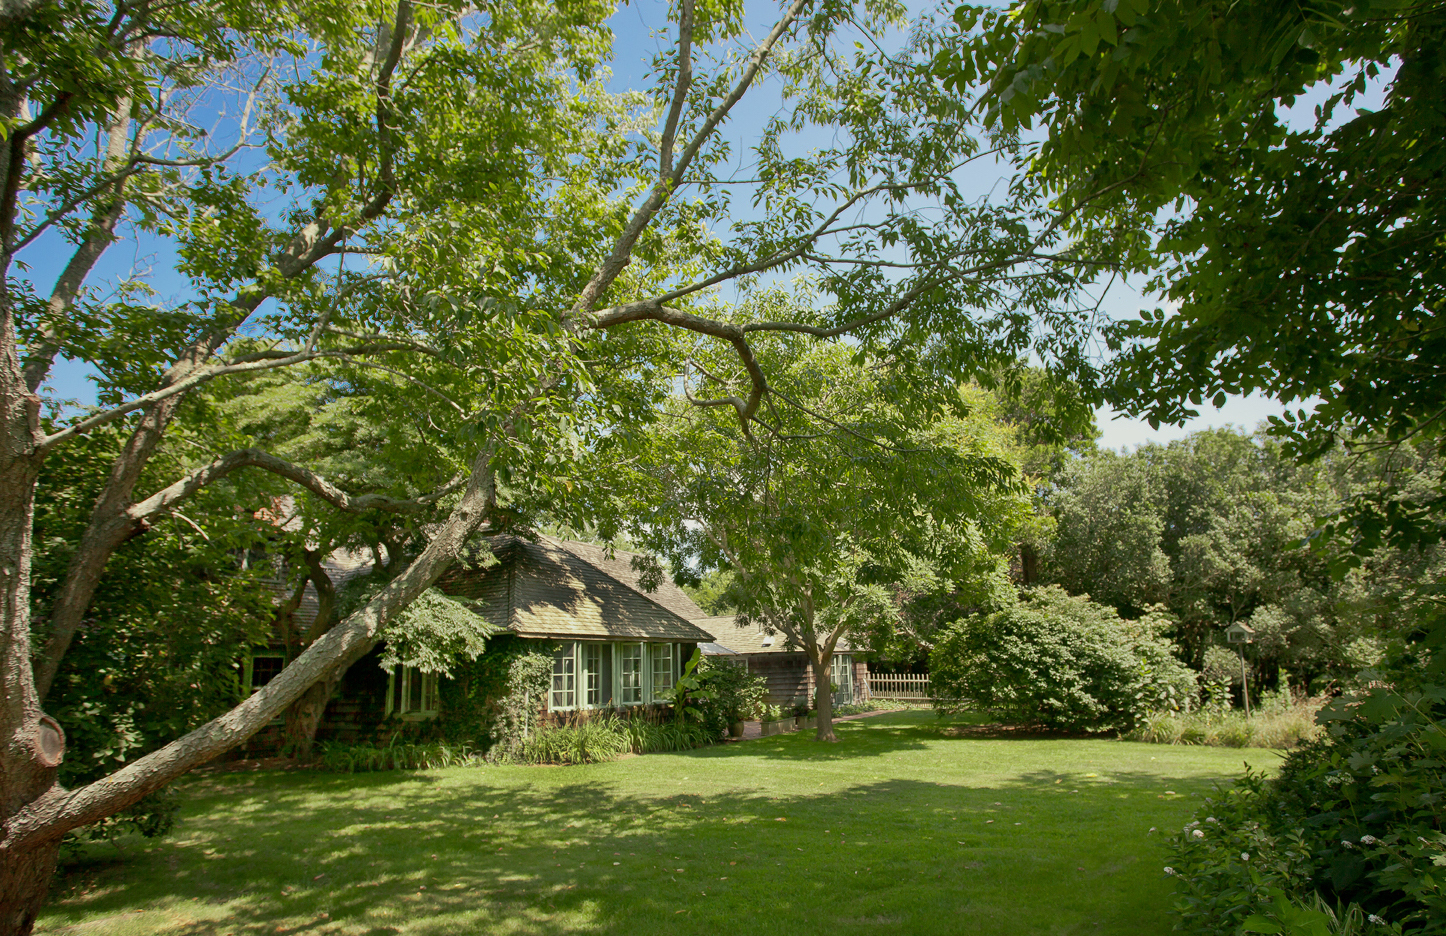 The Sagaponack home of the late Peter Matthiessen.